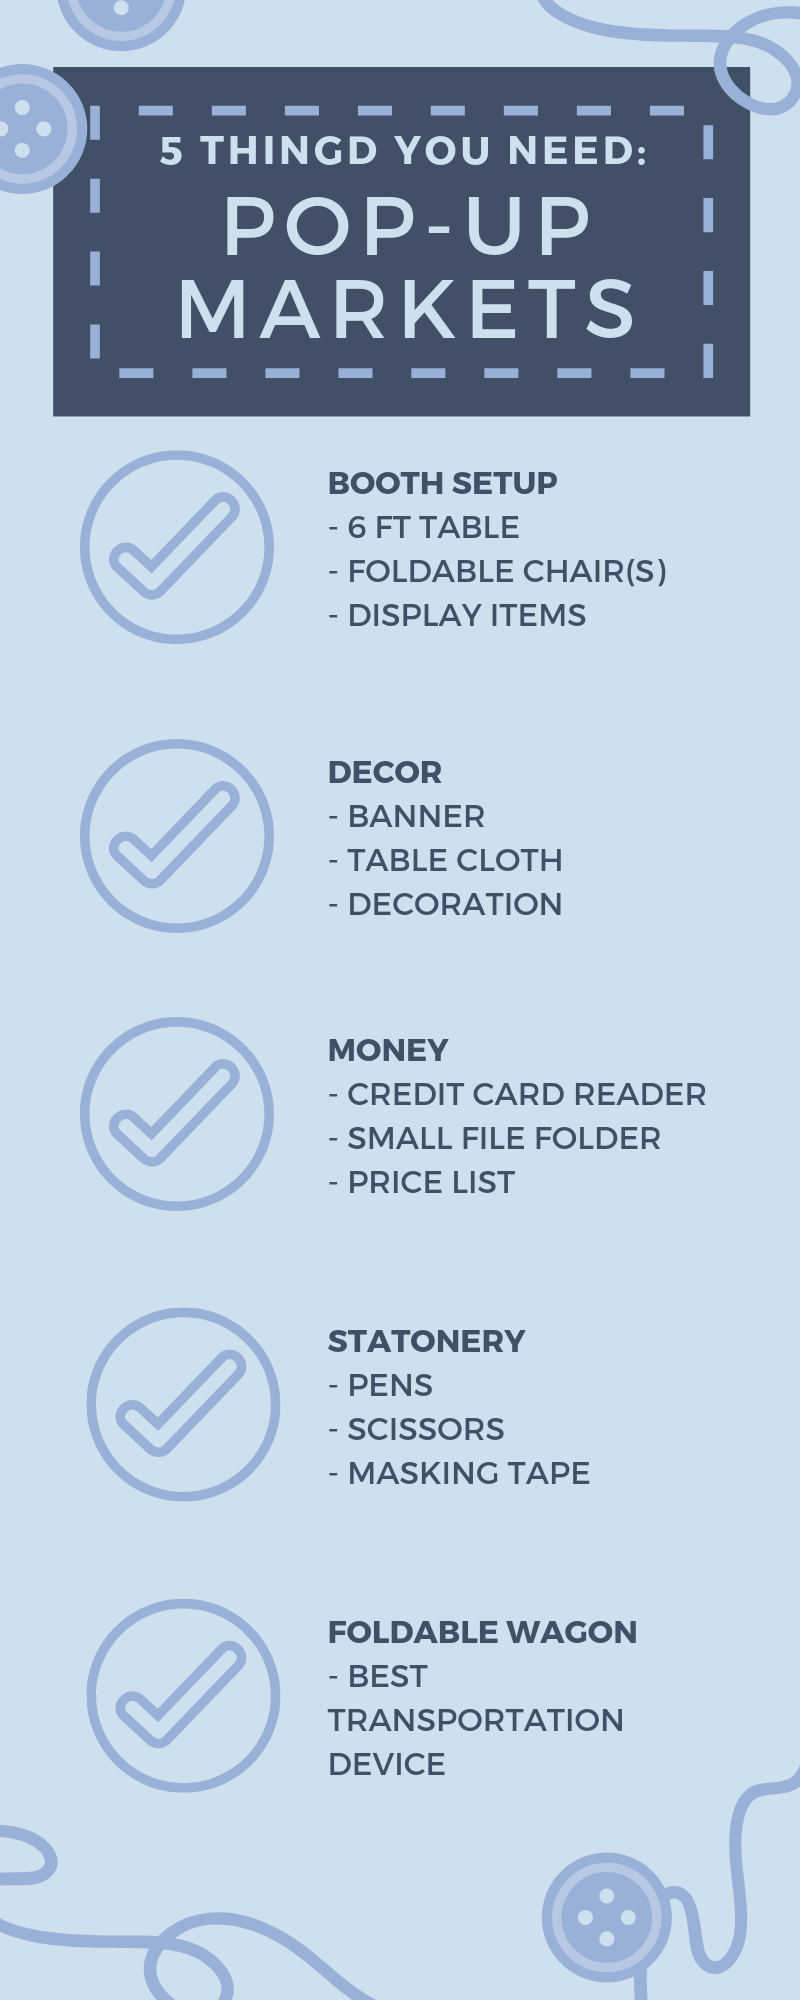 5 Things You Need: Pop-Up Market Edition | infographic | Thoughtfully Handmade